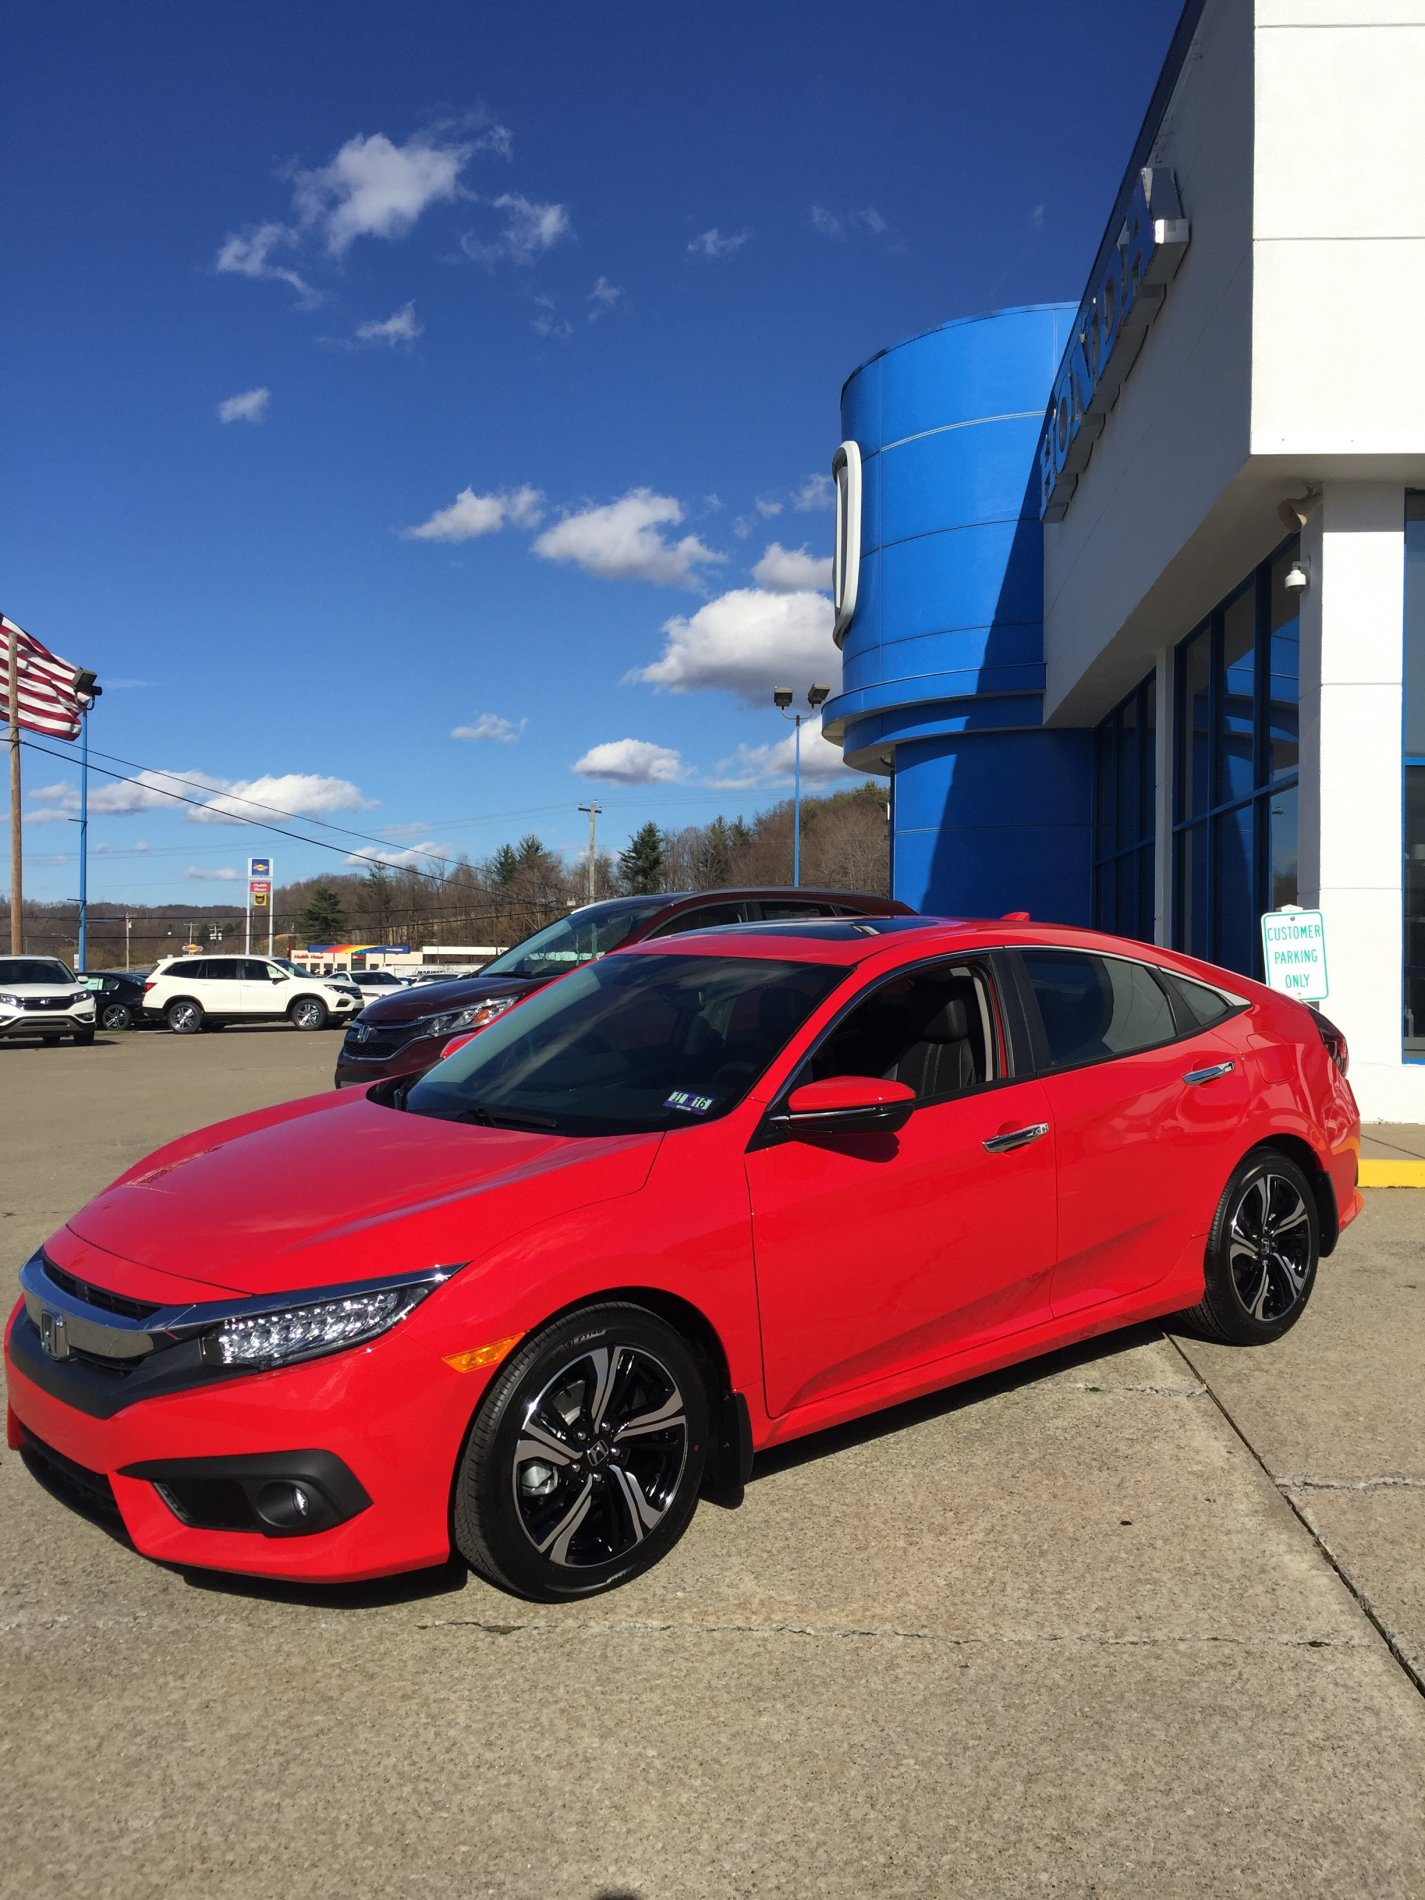 2016 Honda Civic Touring Edition 002.JPG